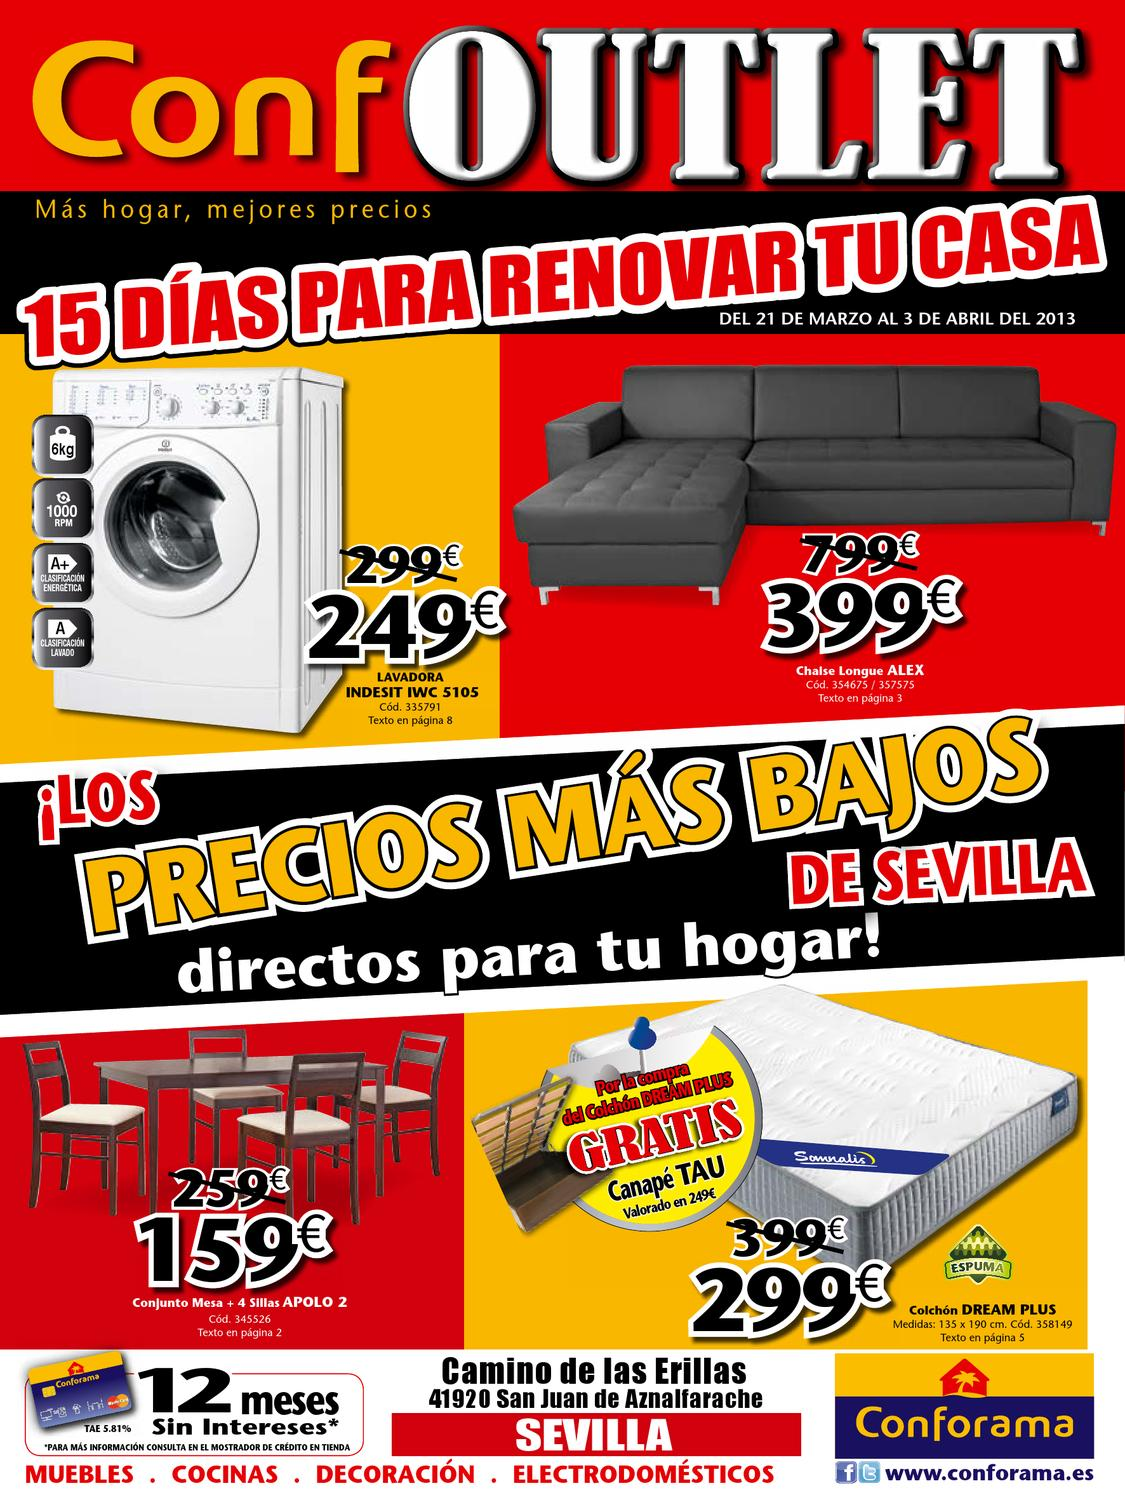 Conforama catalogo promociones sevilla outlet 3 2013 by - Conforama sevilla catalogo ...